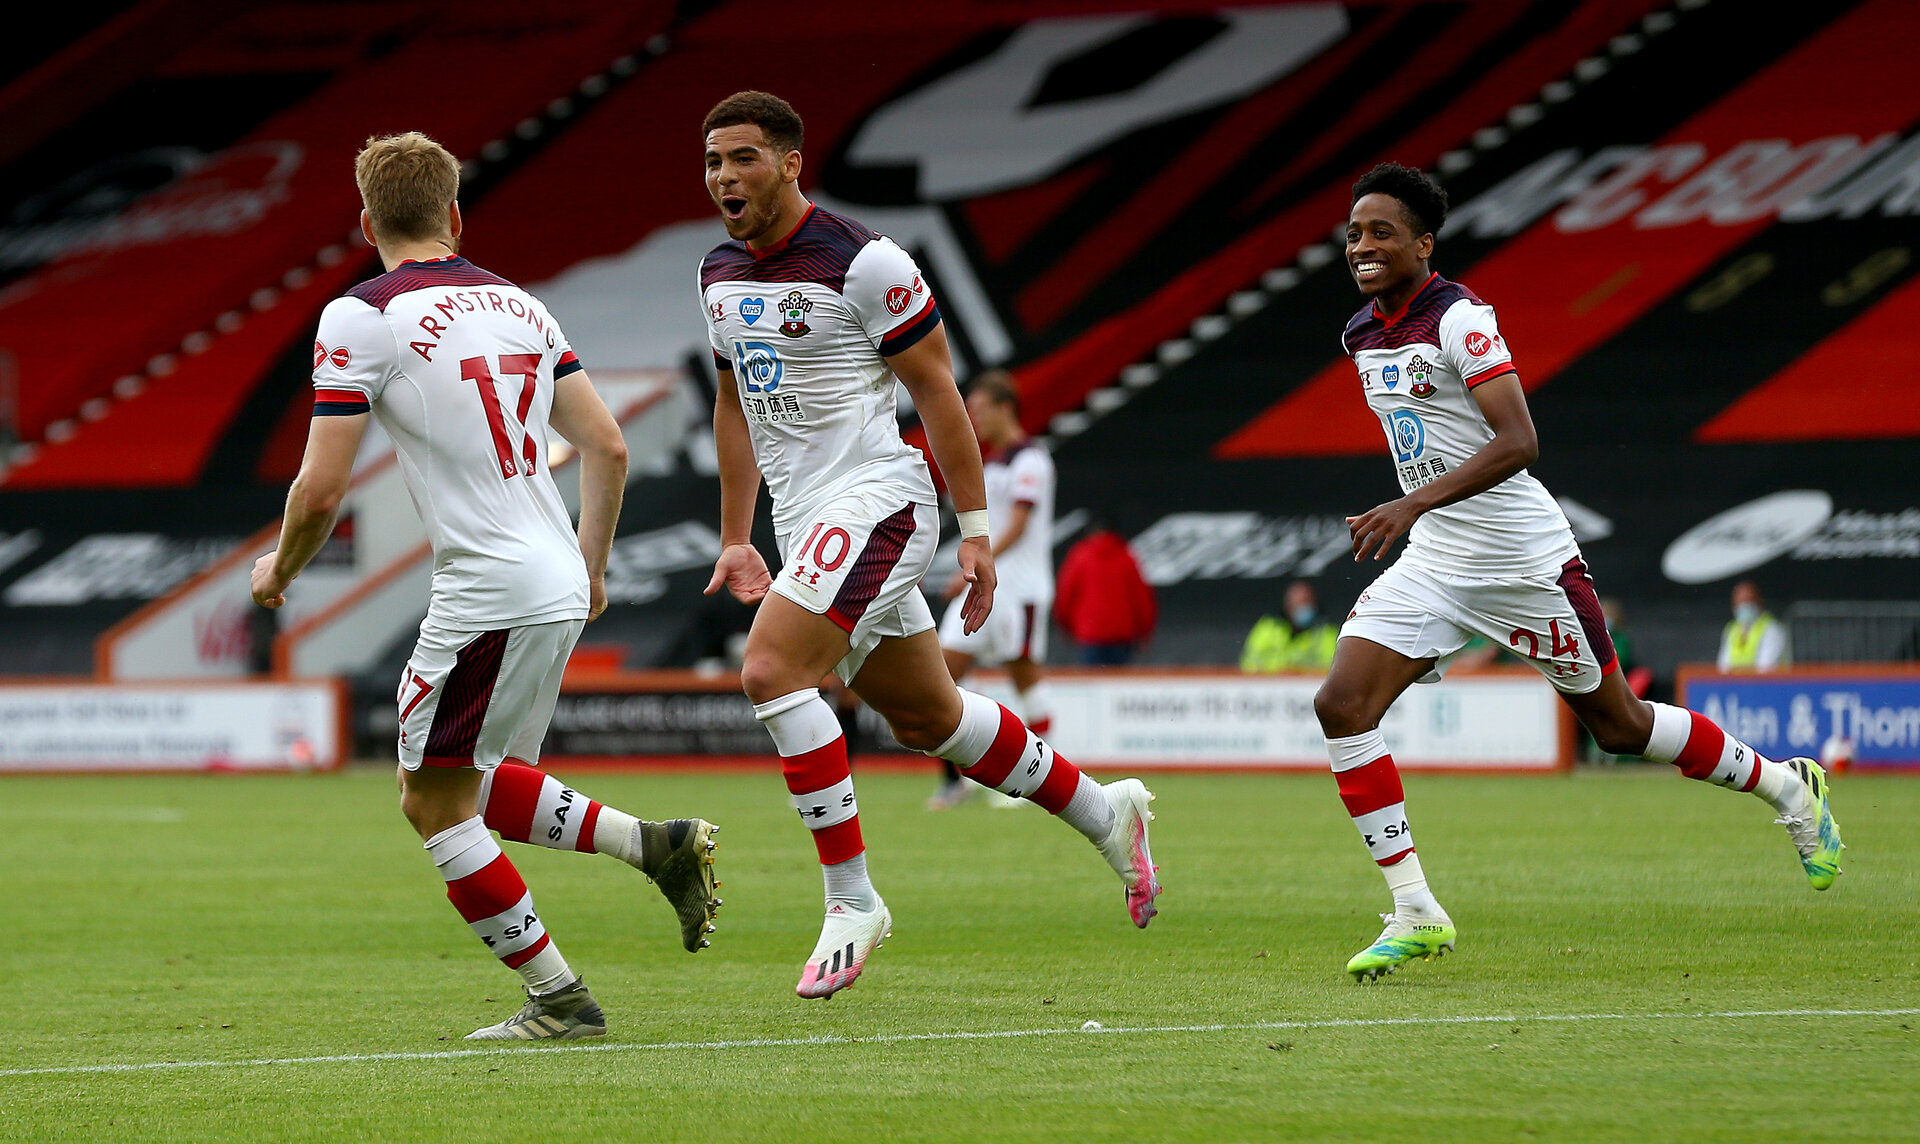 BOURNEMOUTH, ENGLAND - JULY 19: Ché Adams(centre) of Southampton celebrates after scoring during the Premier League match between AFC Bournemouth and Southampton FC at Vitality Stadium on July 19, 2020 in Bournemouth, United Kingdom. Football Stadiums around Europe remain empty due to the Coronavirus Pandemic as Government social distancing laws prohibit fans inside venues resulting in all fixtures being played behind closed doors. (Photo by Matt Watson/Southampton FC via Getty Images)